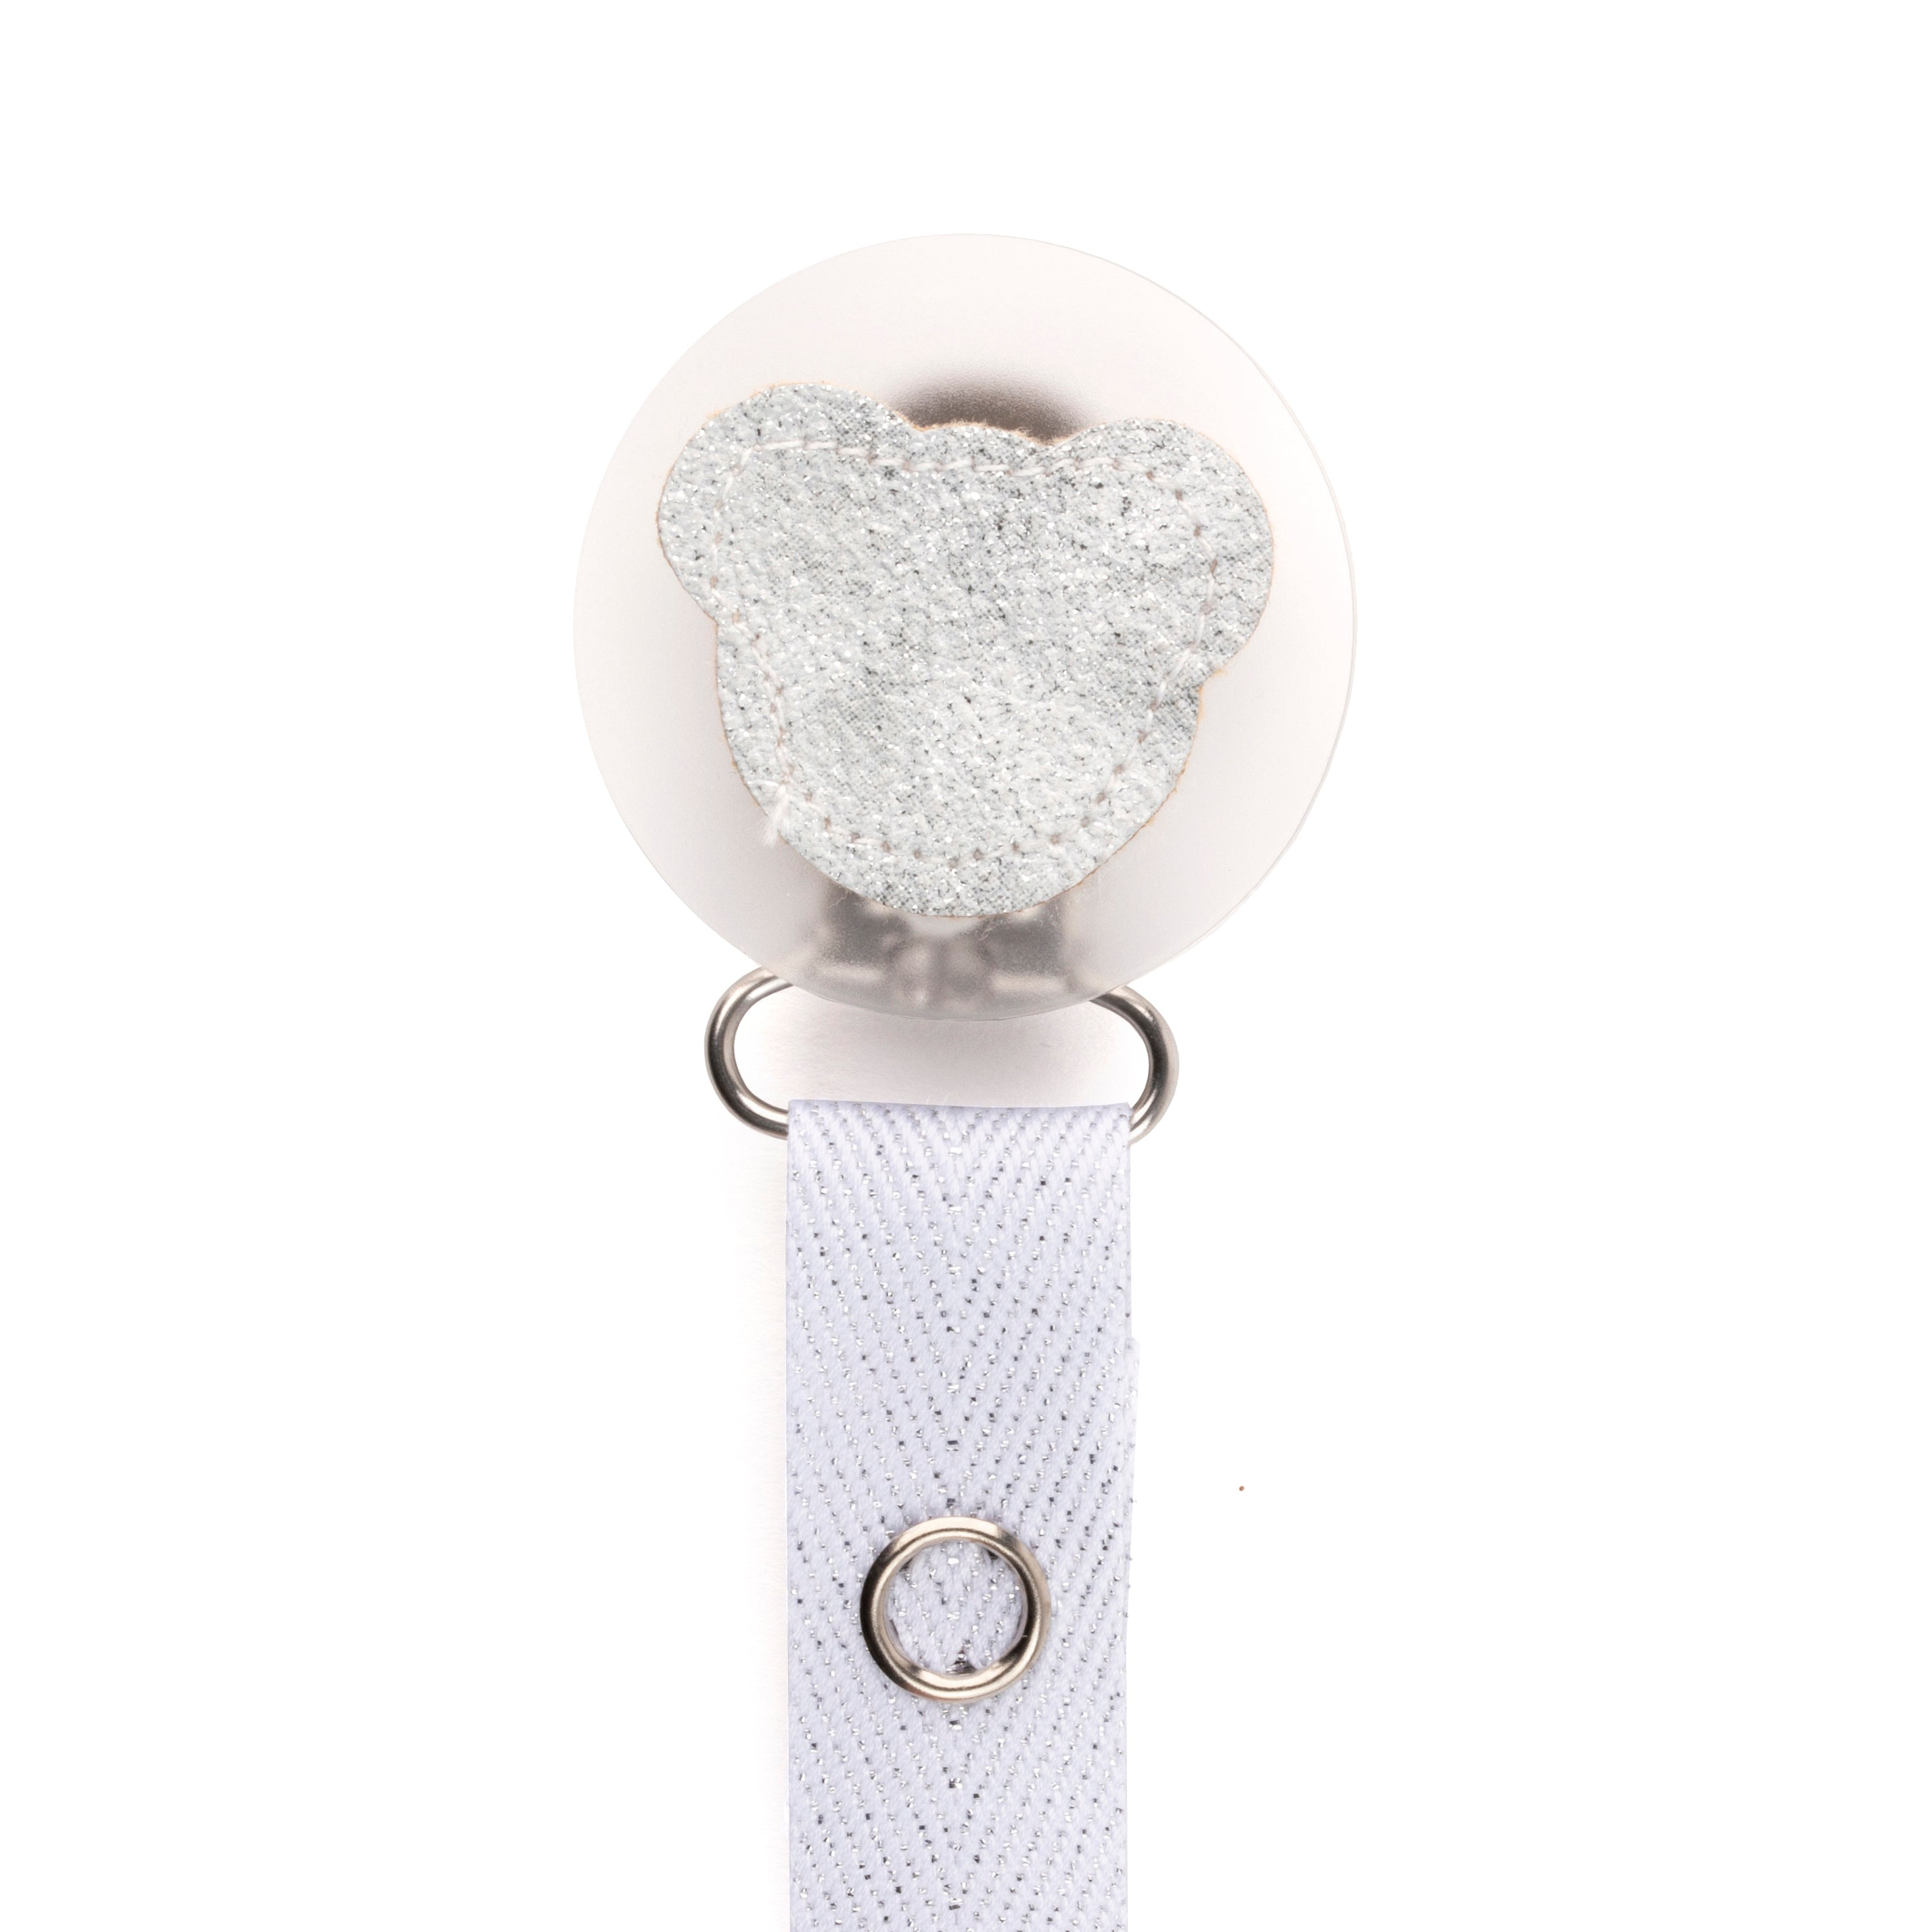 Classy Paci sparkle WHITE leather Teddy, Silver, Grey, girl boy baby pacifier clip